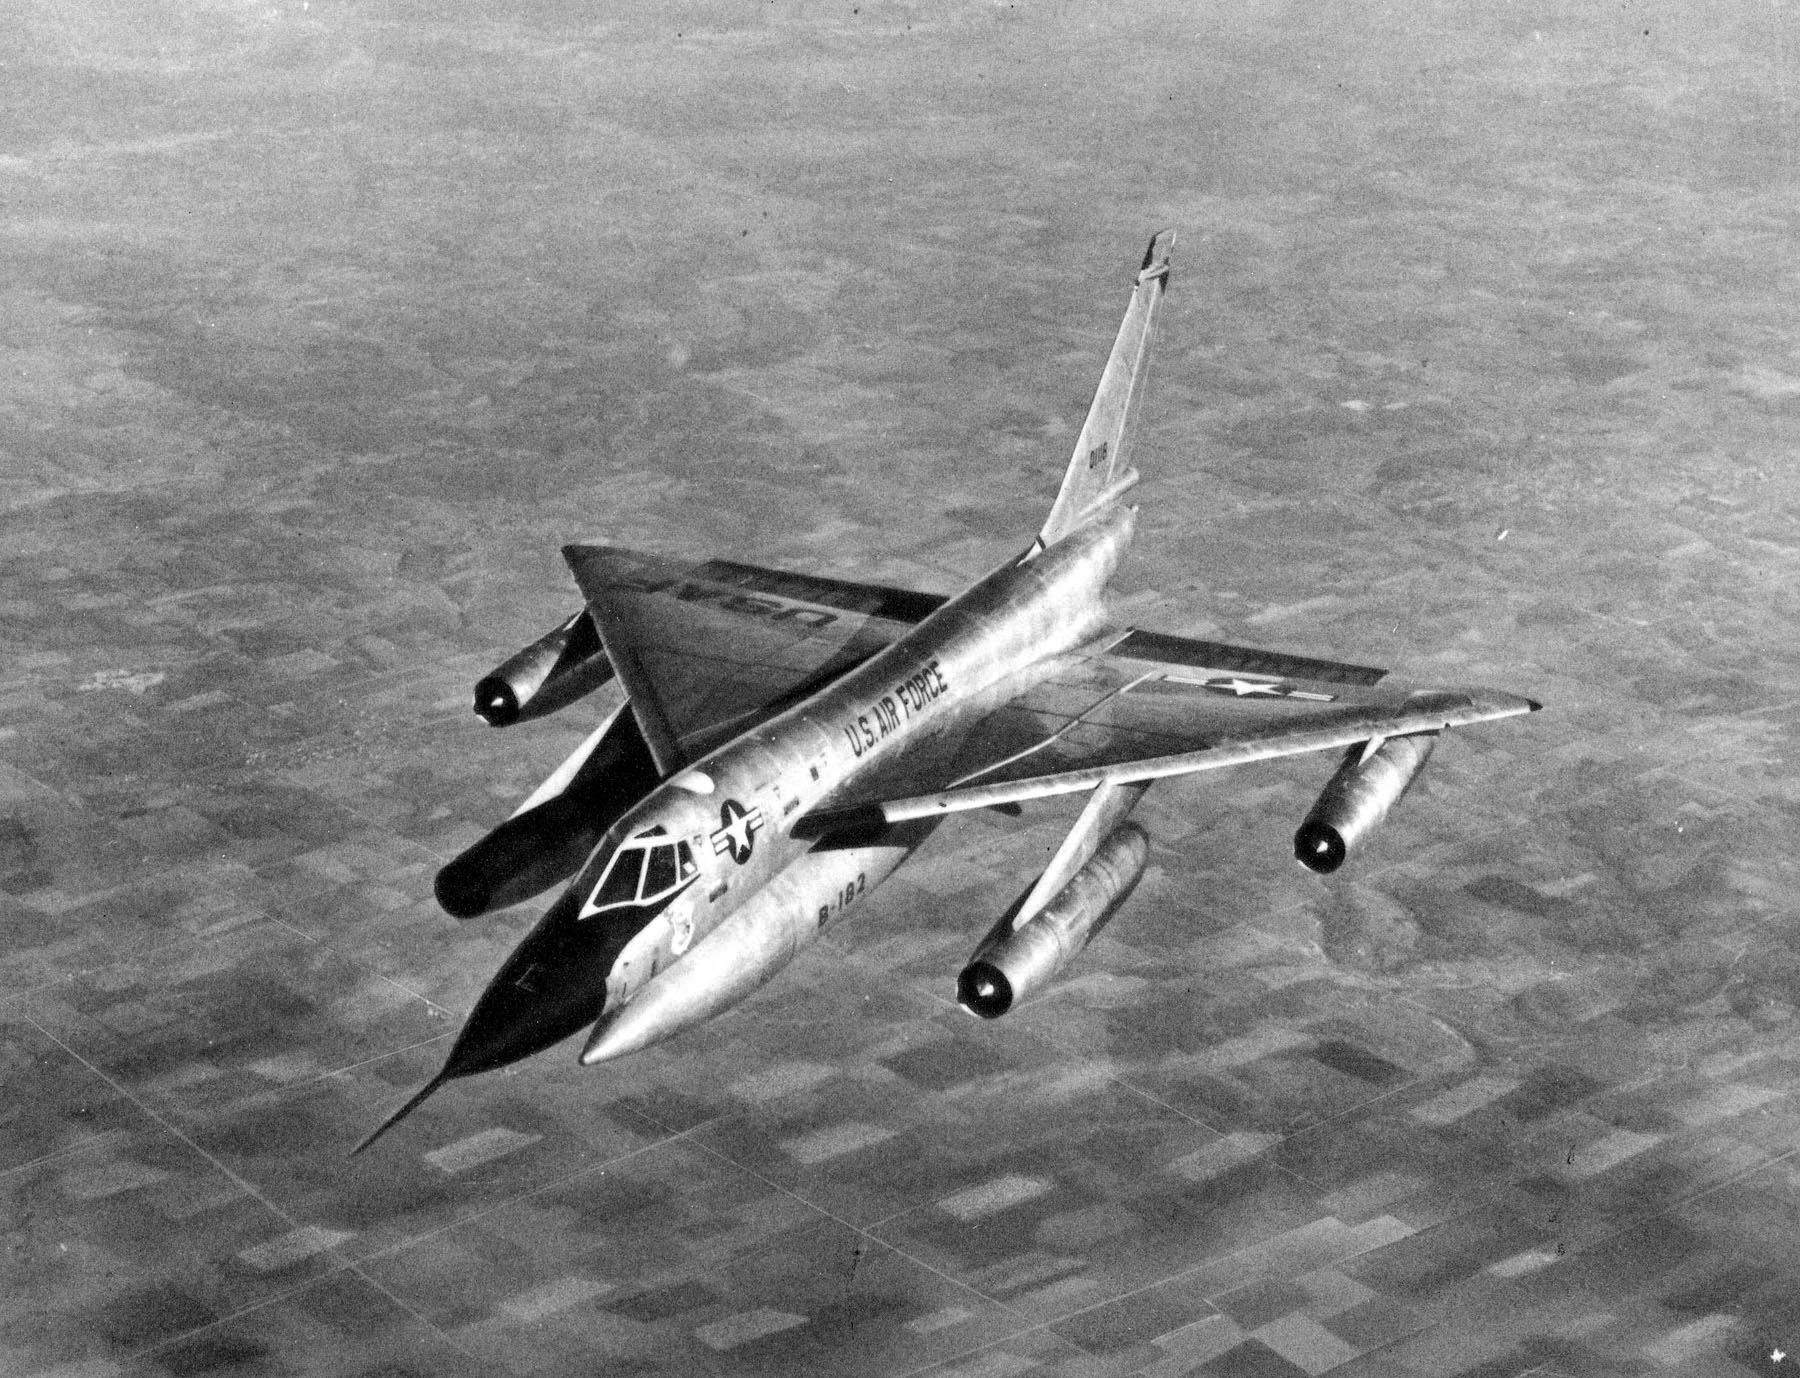 Convair B-58A Hustler in flight (B-58A-15-CF, S/N 60-1118). (U.S. Air Force photo)